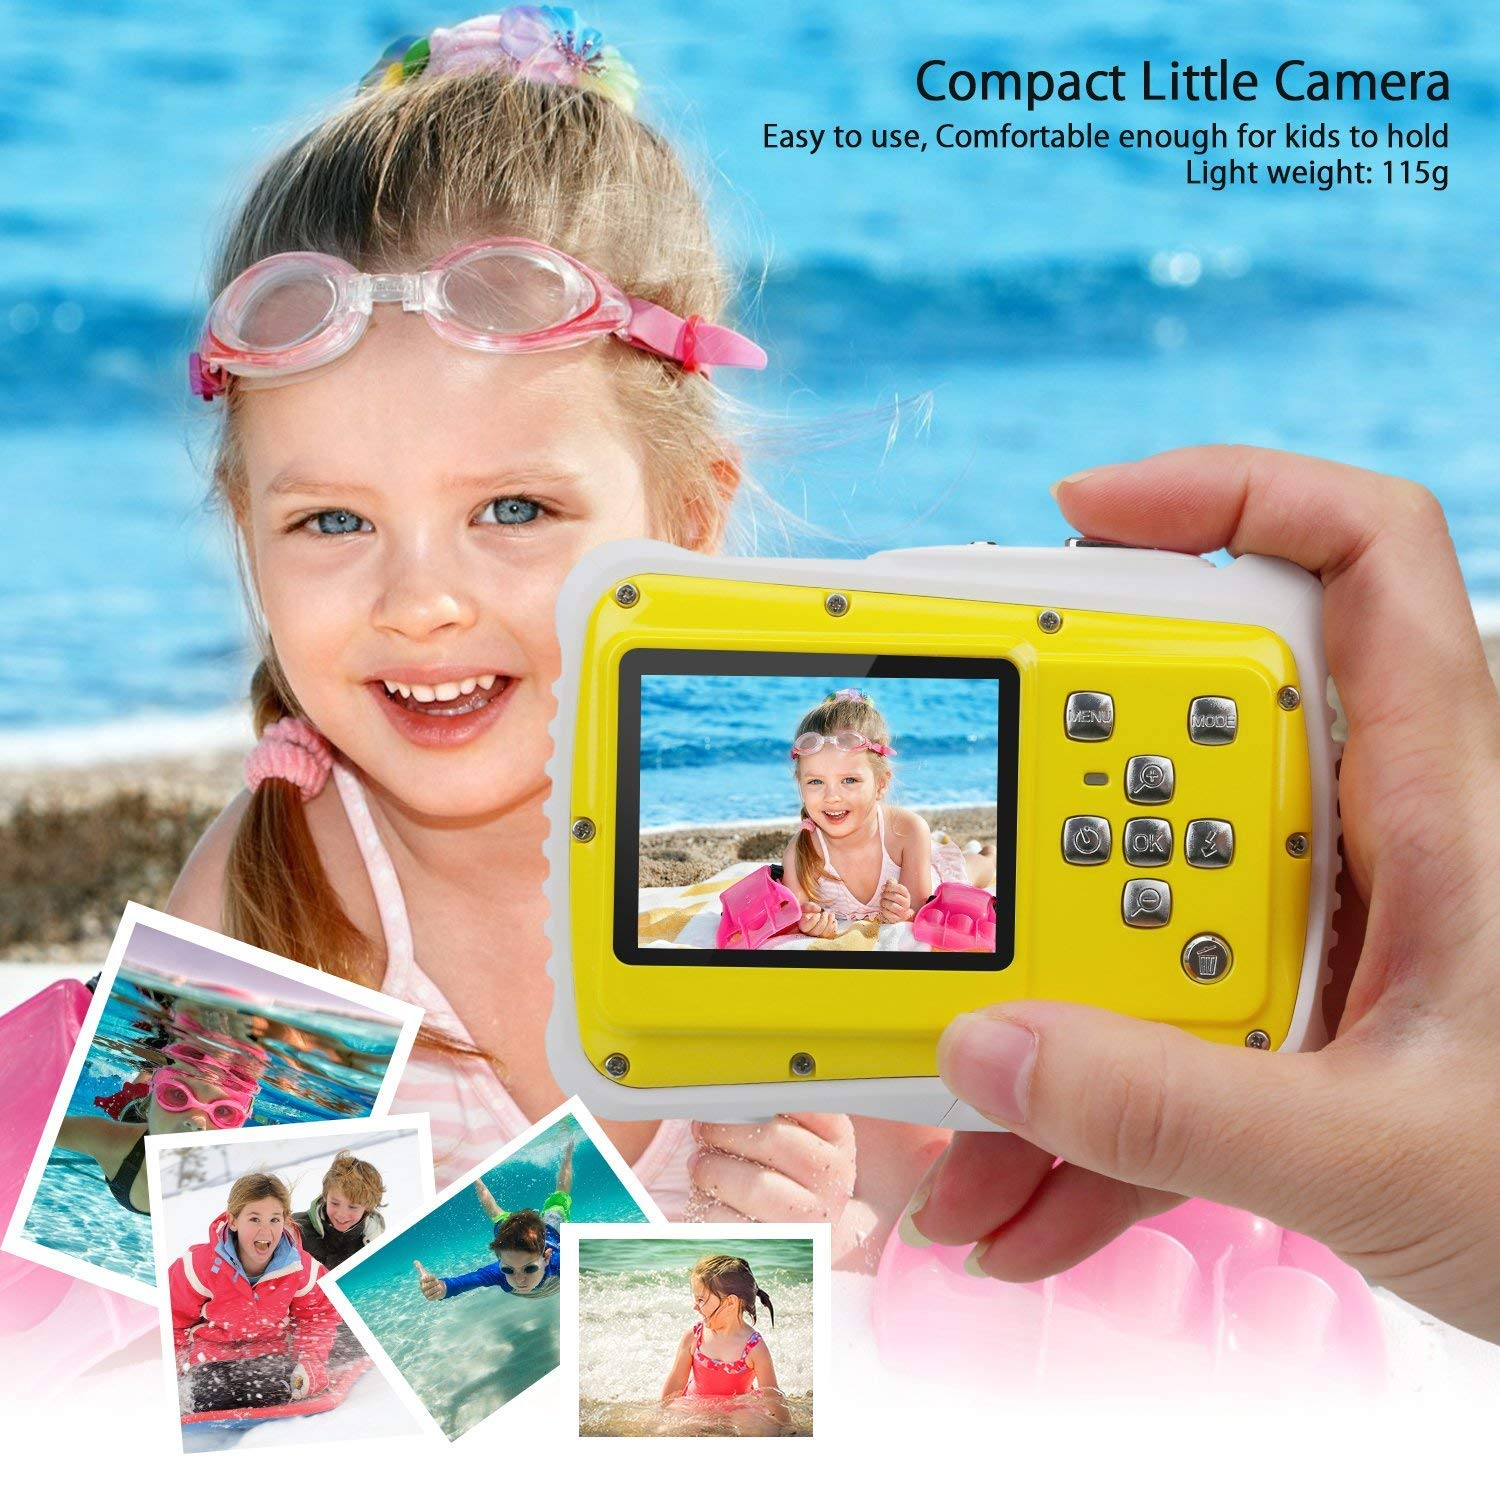 Vetté Digital Camera for Kids with 16GB MicroSD Card Included - Kids Camera Waterproof - 4X Zoom, up to 12MP, 720 HD Underwater Video Quality, TFT LCD Screen for Kids (Yellow) by Vetté (Image #5)